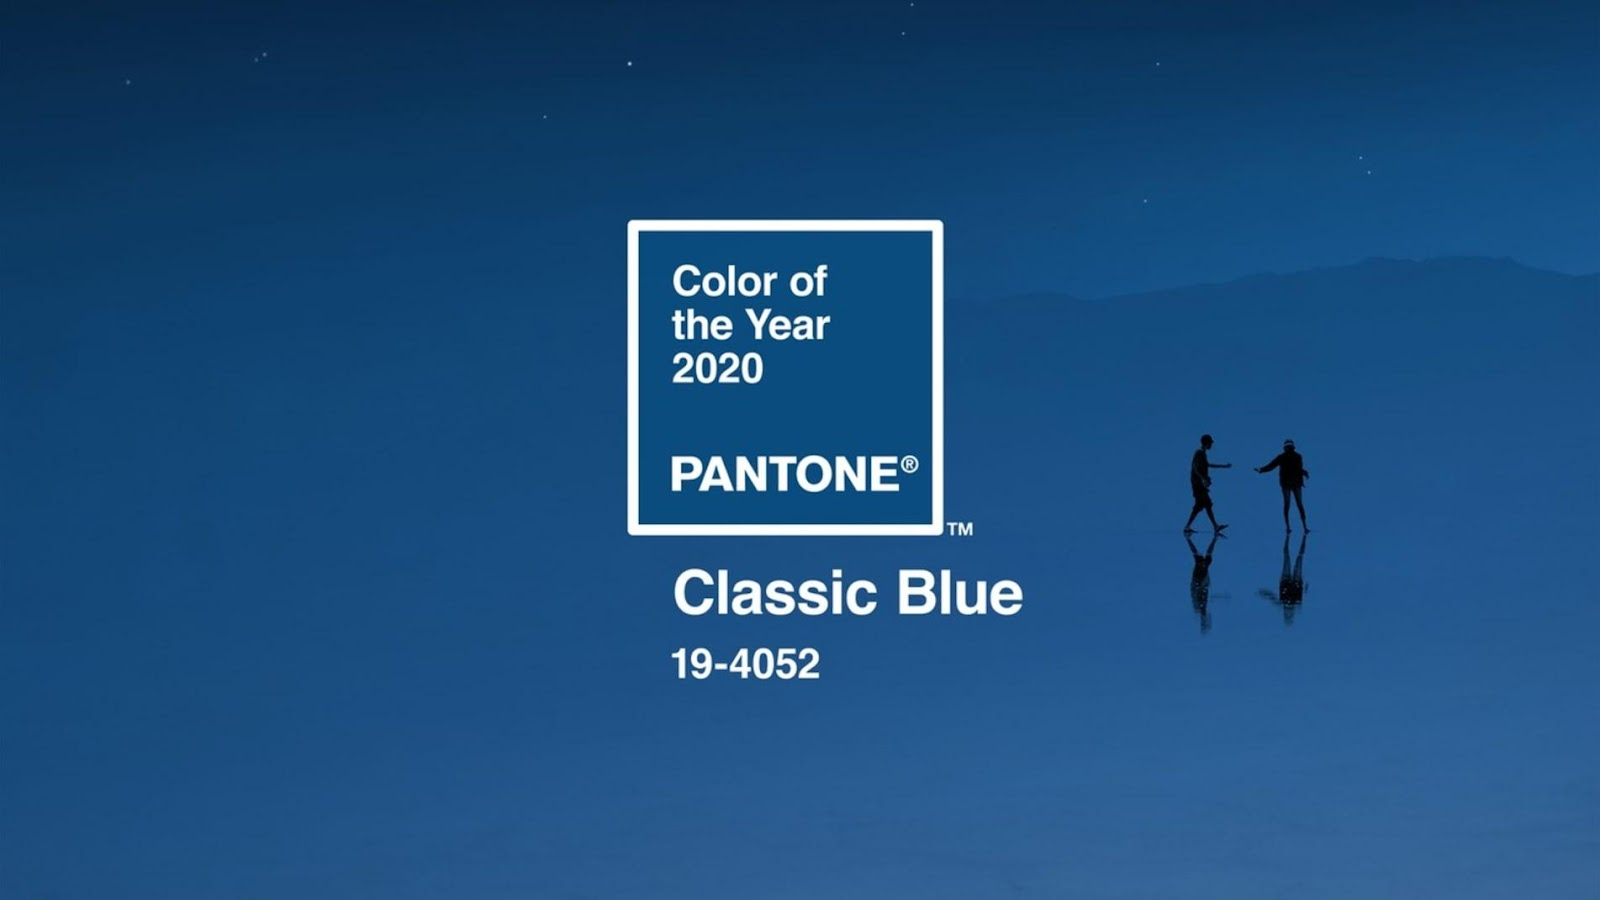 Pantone's 2020 Color of the Year is Classic Blue.